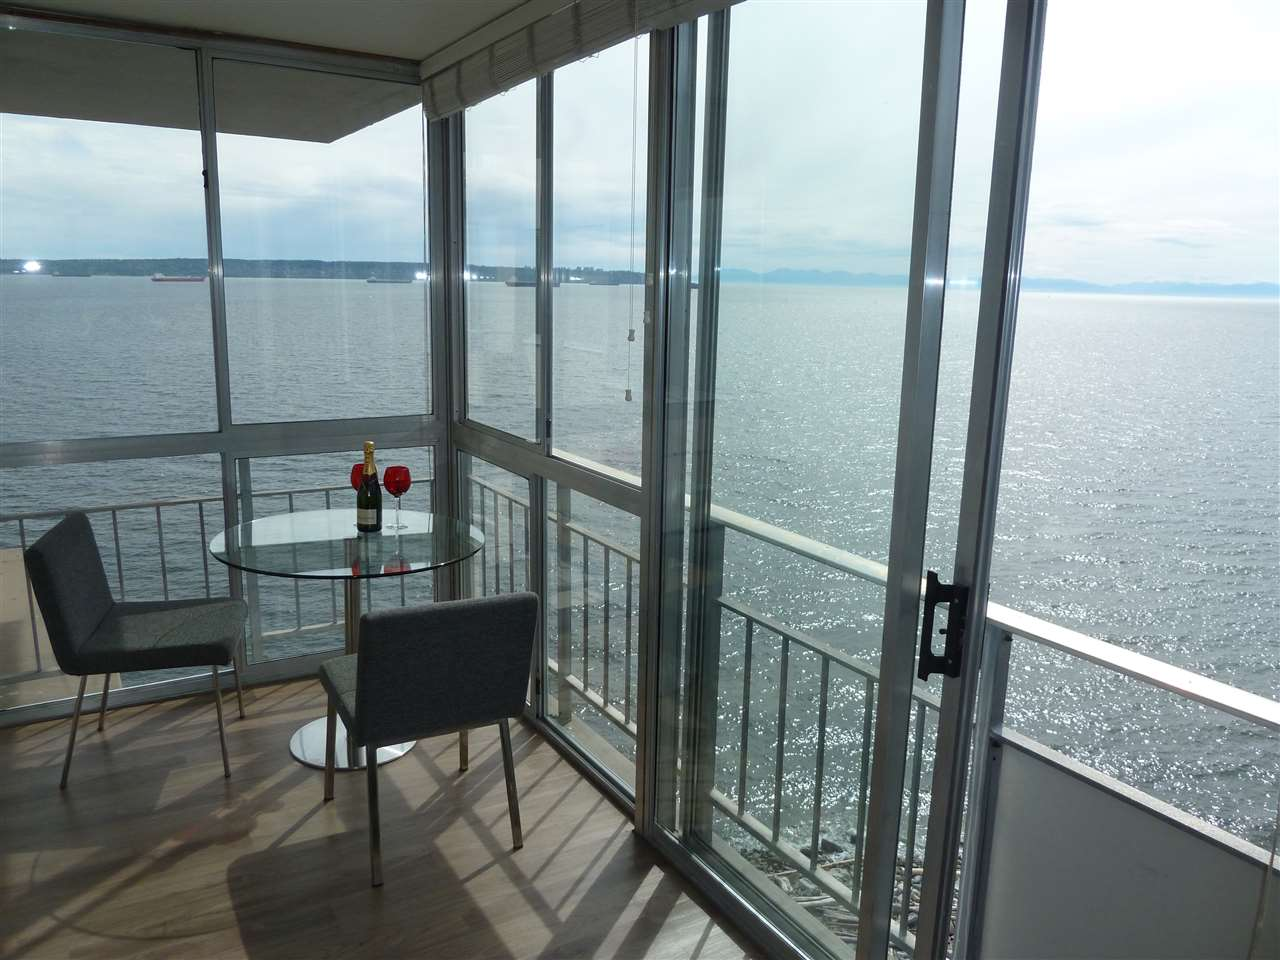 """Outstanding """"Seastrand"""" gem awaits you! This northwest corner unit has outstanding waterfront ocean views over Dundarave pier and West Van Seawall, and the view continues to Dundarave Village and extends to the North Shore mountains. Very bright and open - don't be fooled by square footage. Immaculate condition with milled hardwood floors, large open kitchen, and enclosed balcony with windows that open to allow the cool ocean breeze in on those hot summer days. Five star location just steps to Seawall, and a short walk to restaurants, grocery, and specialty stores, and all types of amenities. Rentals allowed as well as 1 cat. Catchment area for exclusive Irwin Park Elementary."""